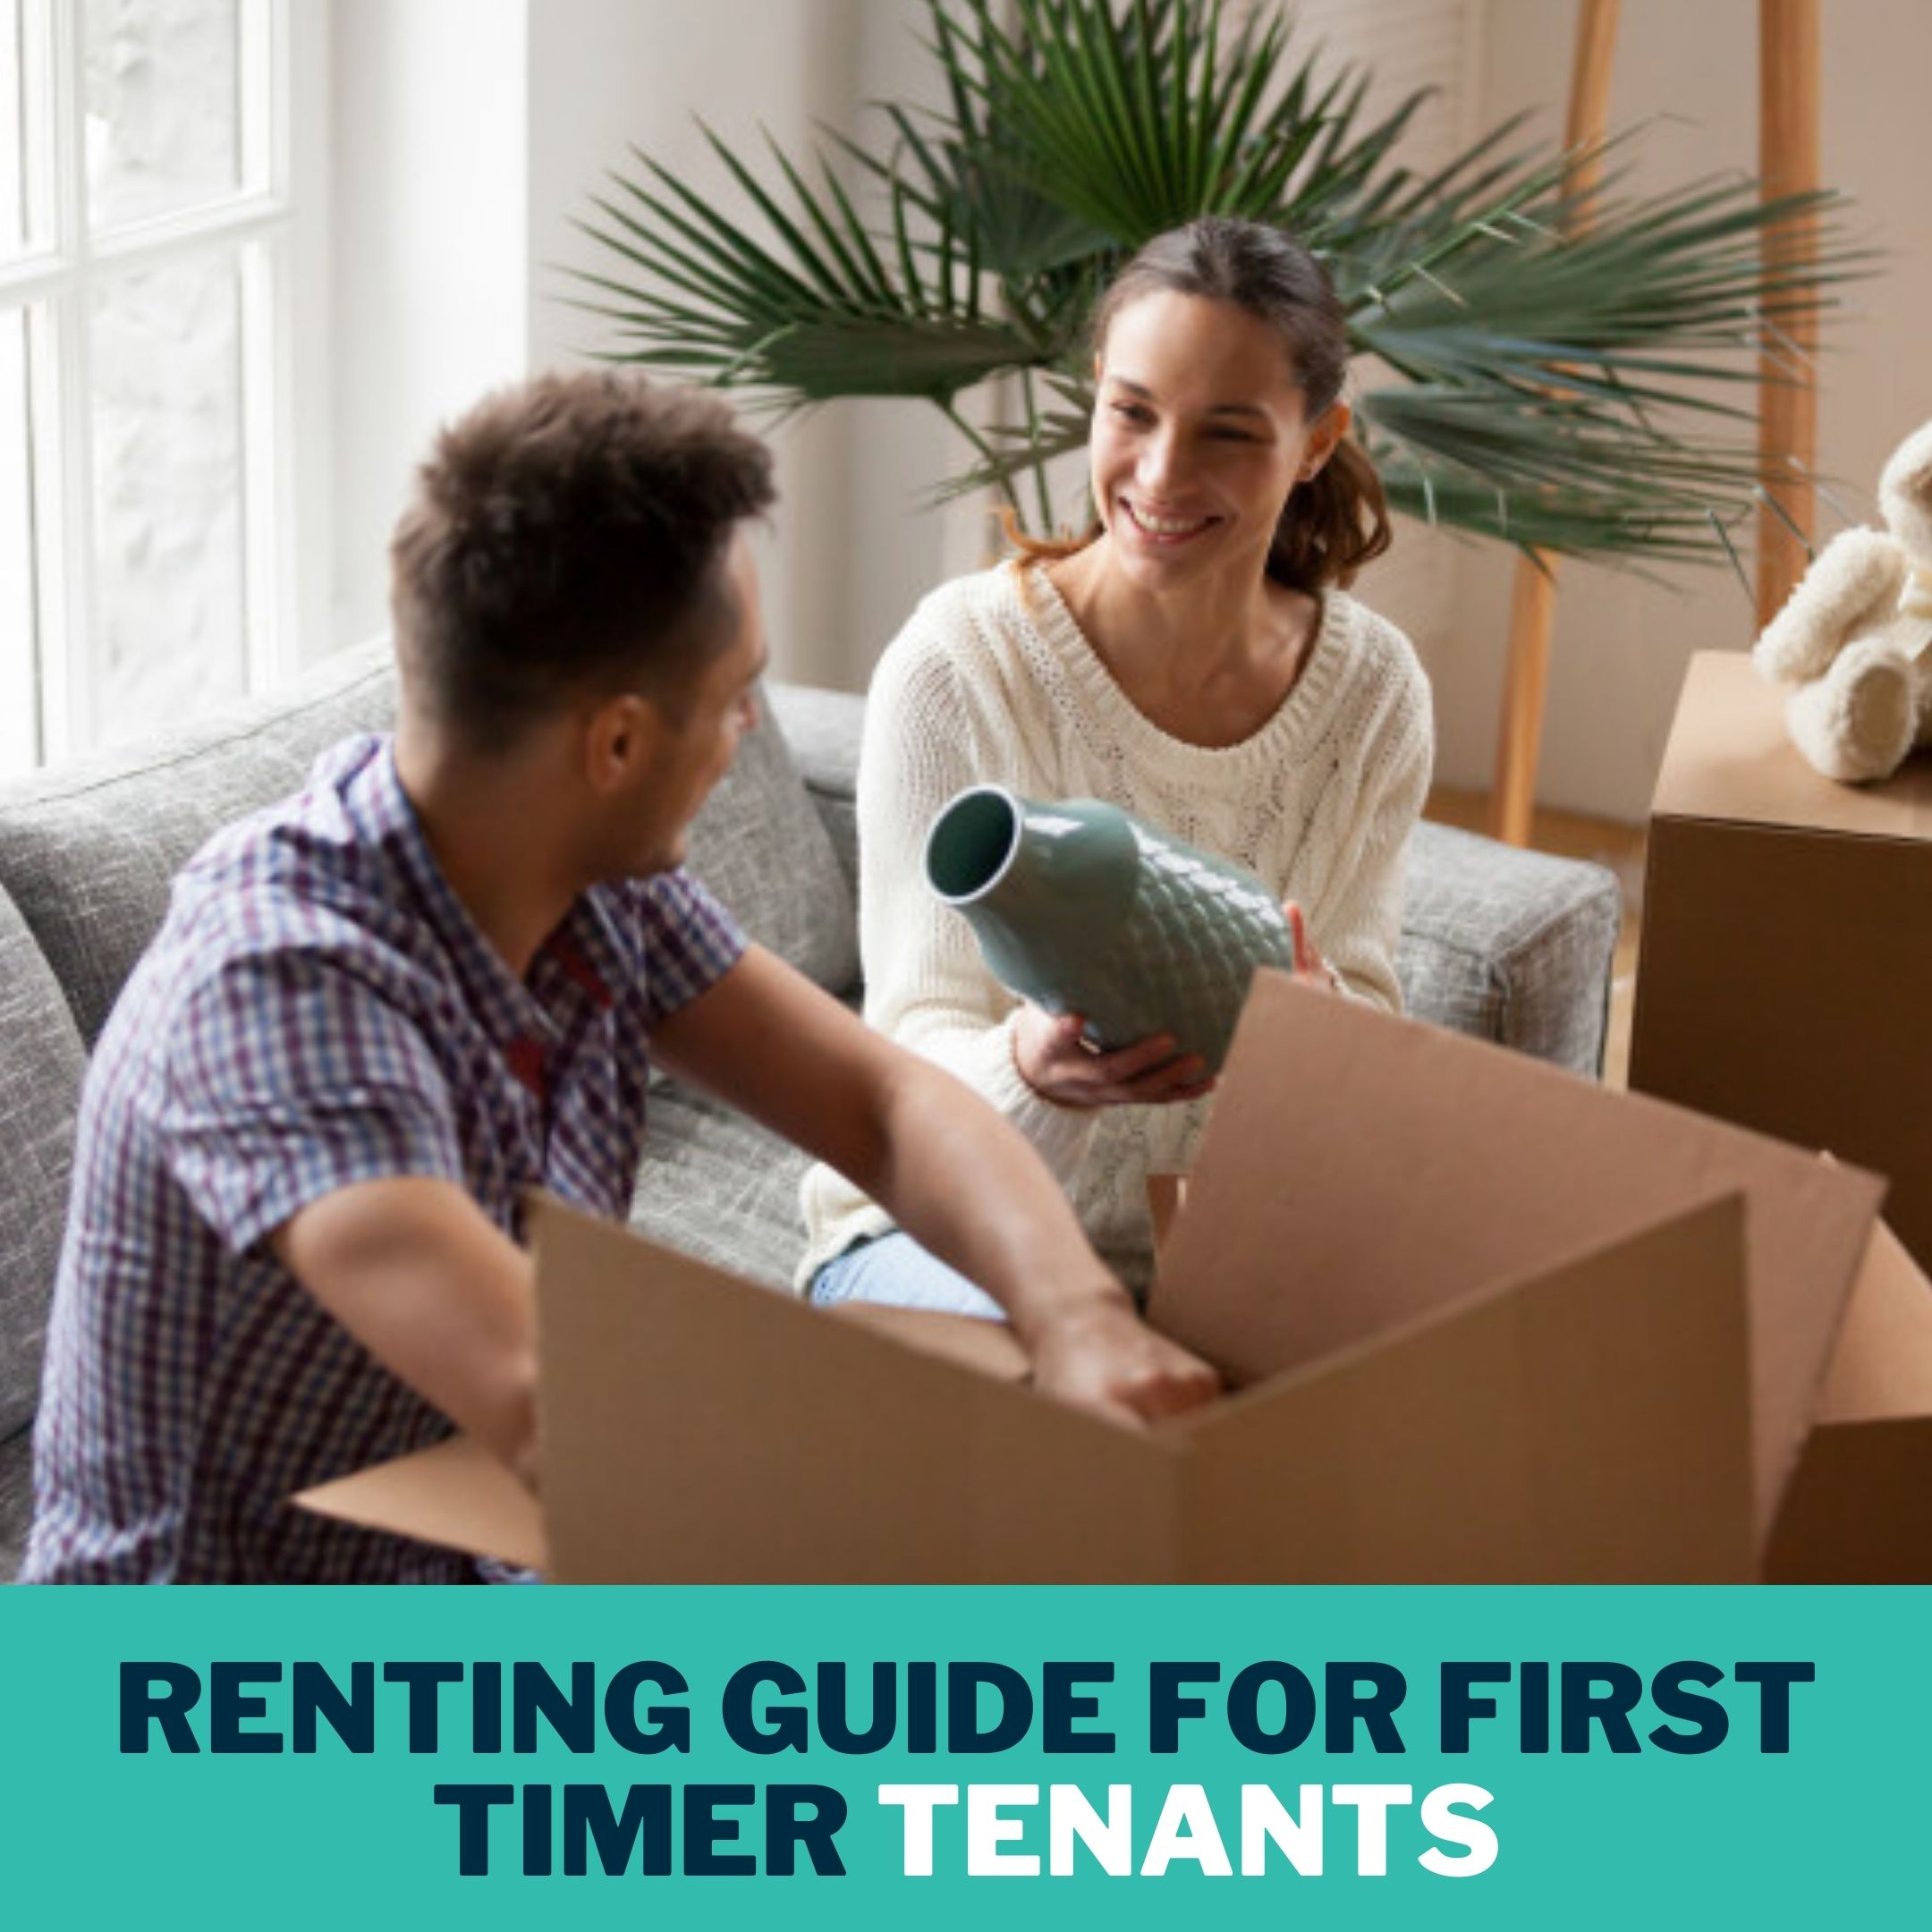 RENTING GUIDE FOR FIRST TIMER TENANTS